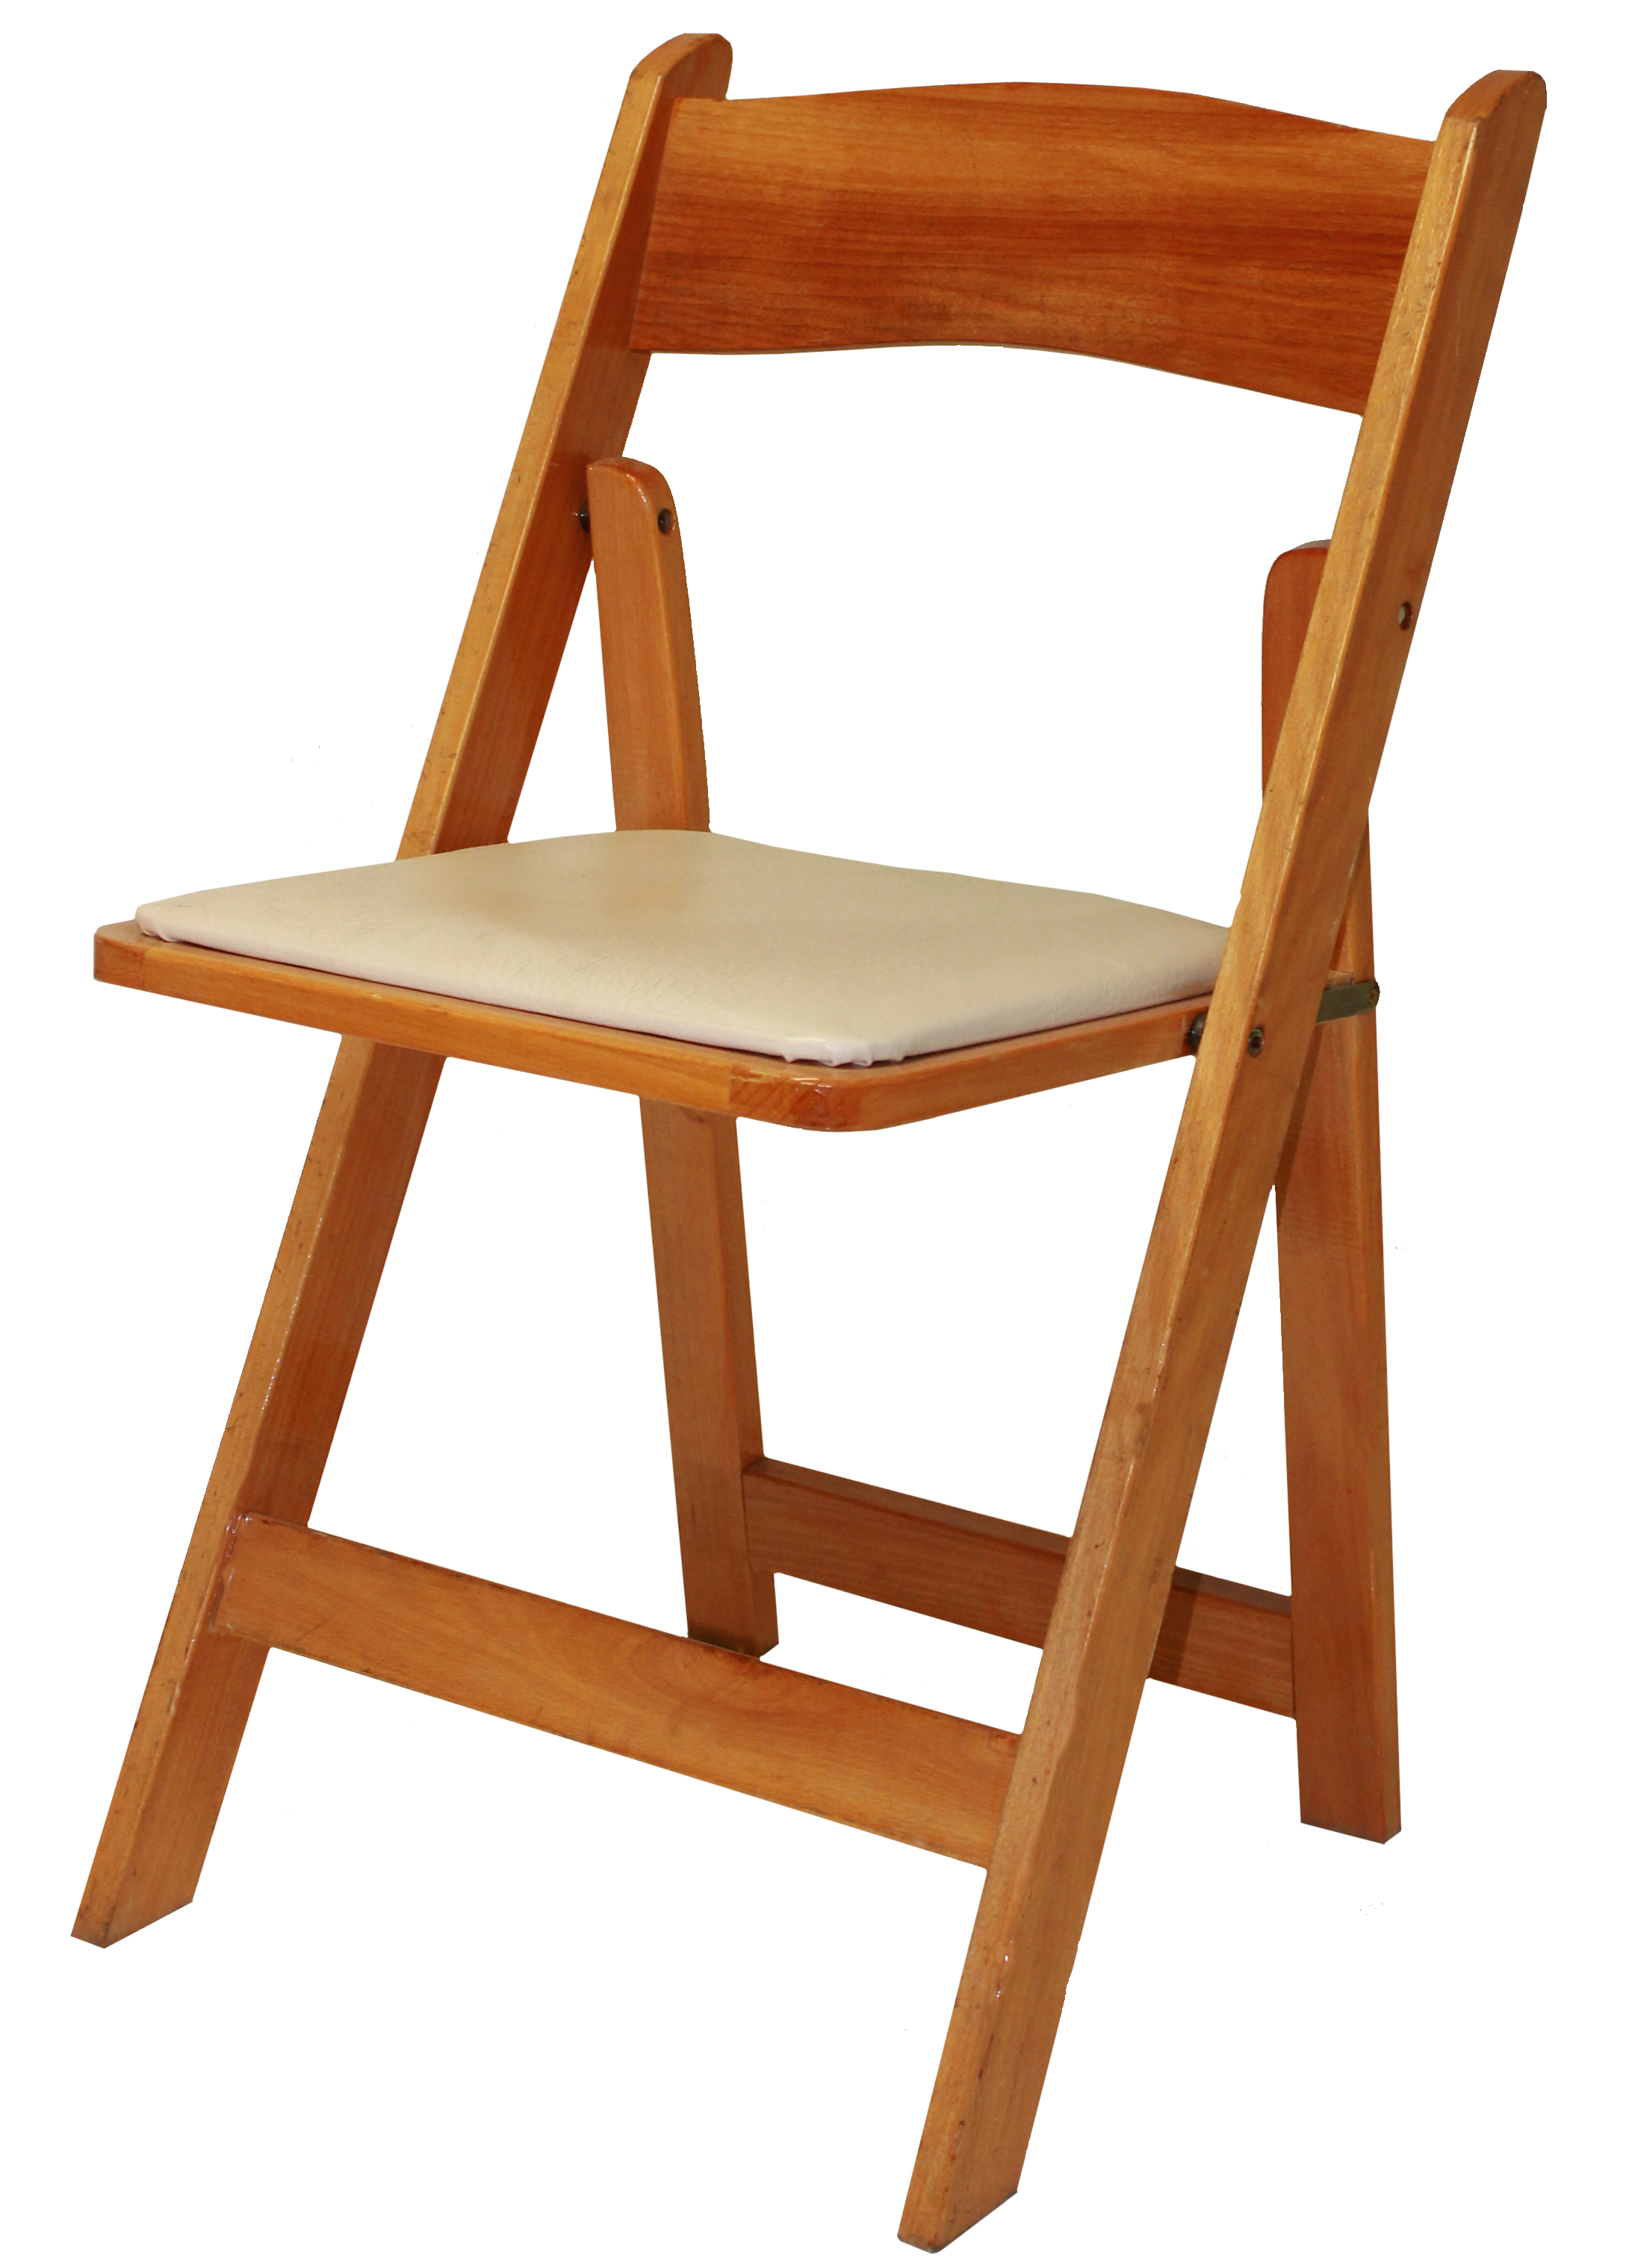 Padded Folding Resin Chairs - Natural Wood